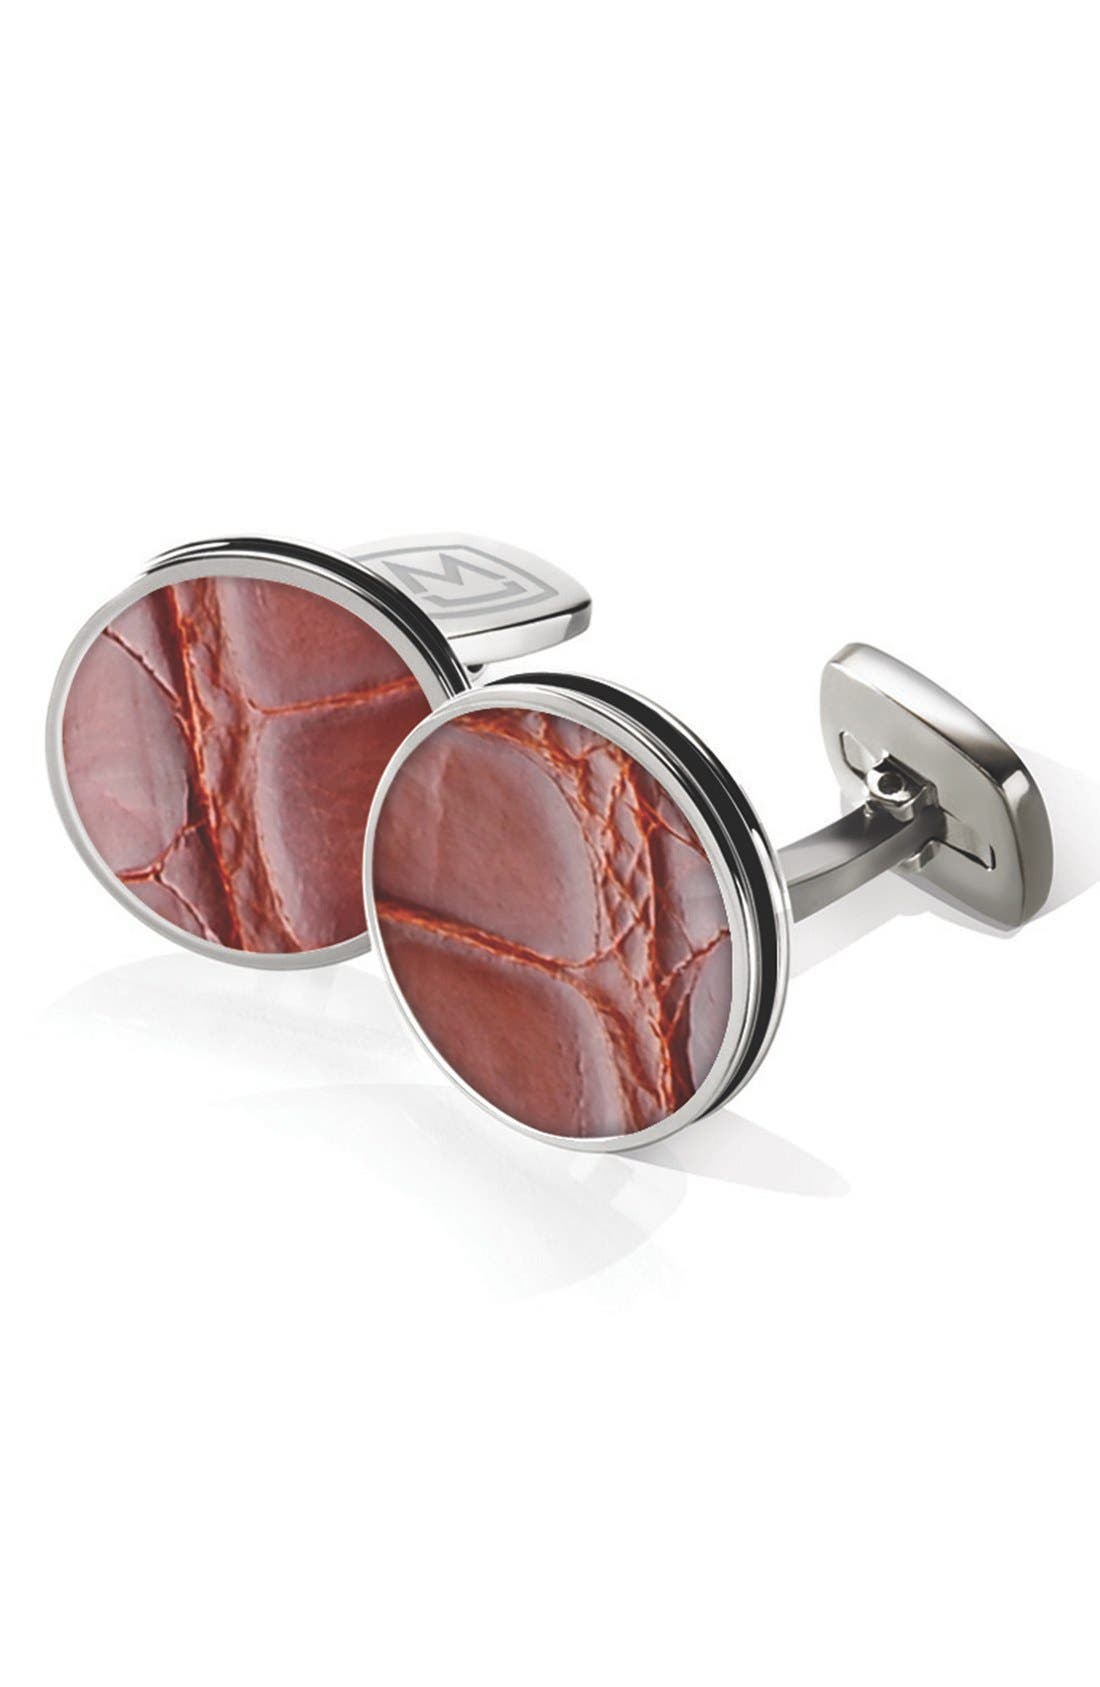 Alligator Cuff Links,                         Main,                         color, Stainless Steel/ Cognac